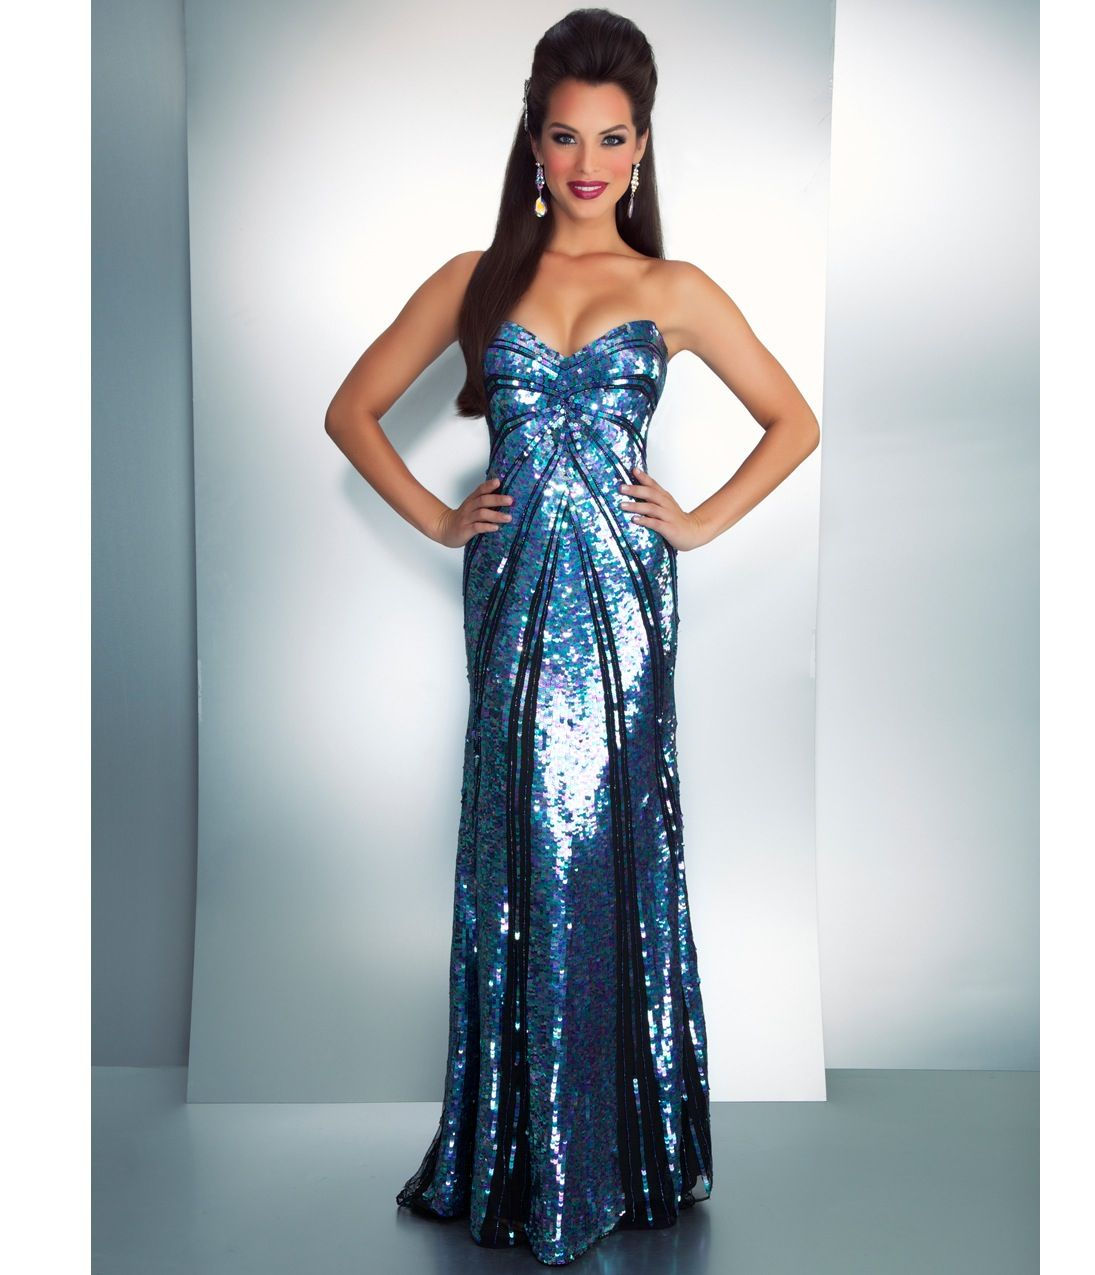 Sparkly prom dress | Prom dresses | Pinterest | Sparkly prom dresses ...